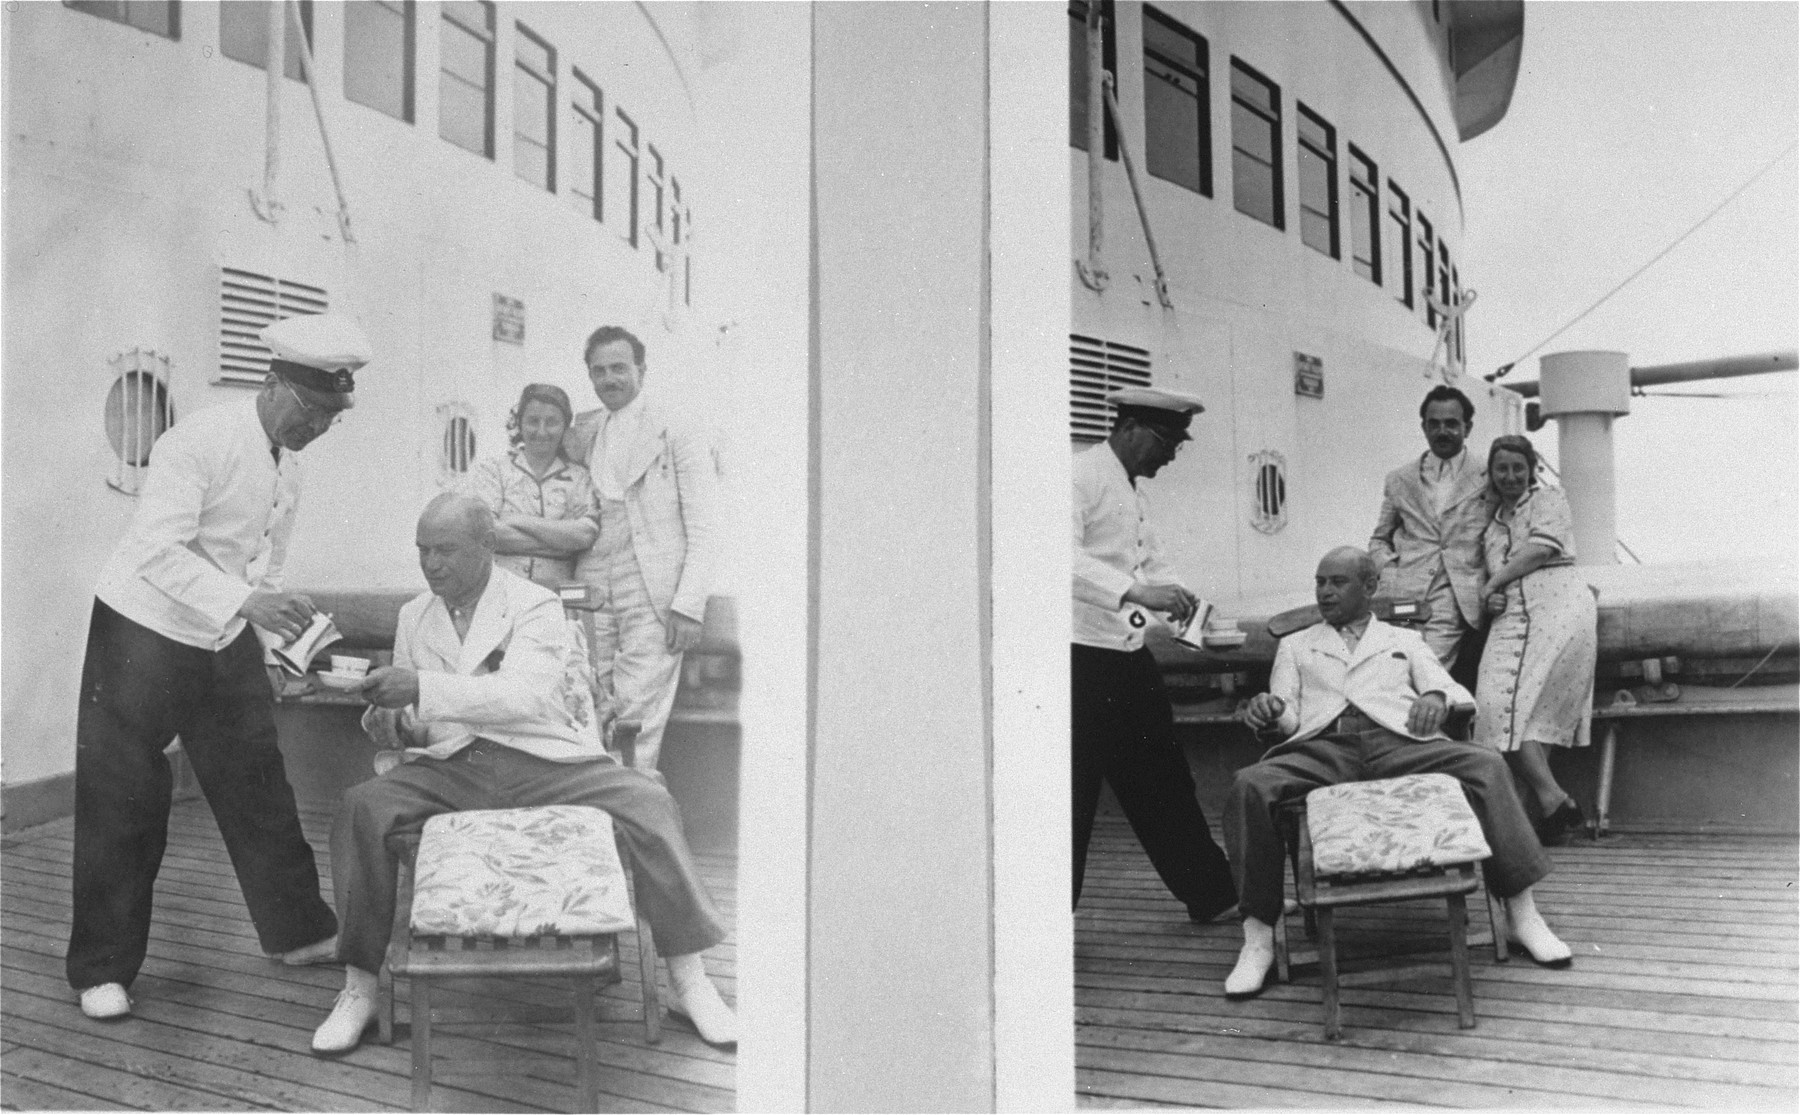 Passengers having coffee on the deck of the MS St. Louis.     From a photo album belonging to St. Louis passenger Moritz Schoenberger.